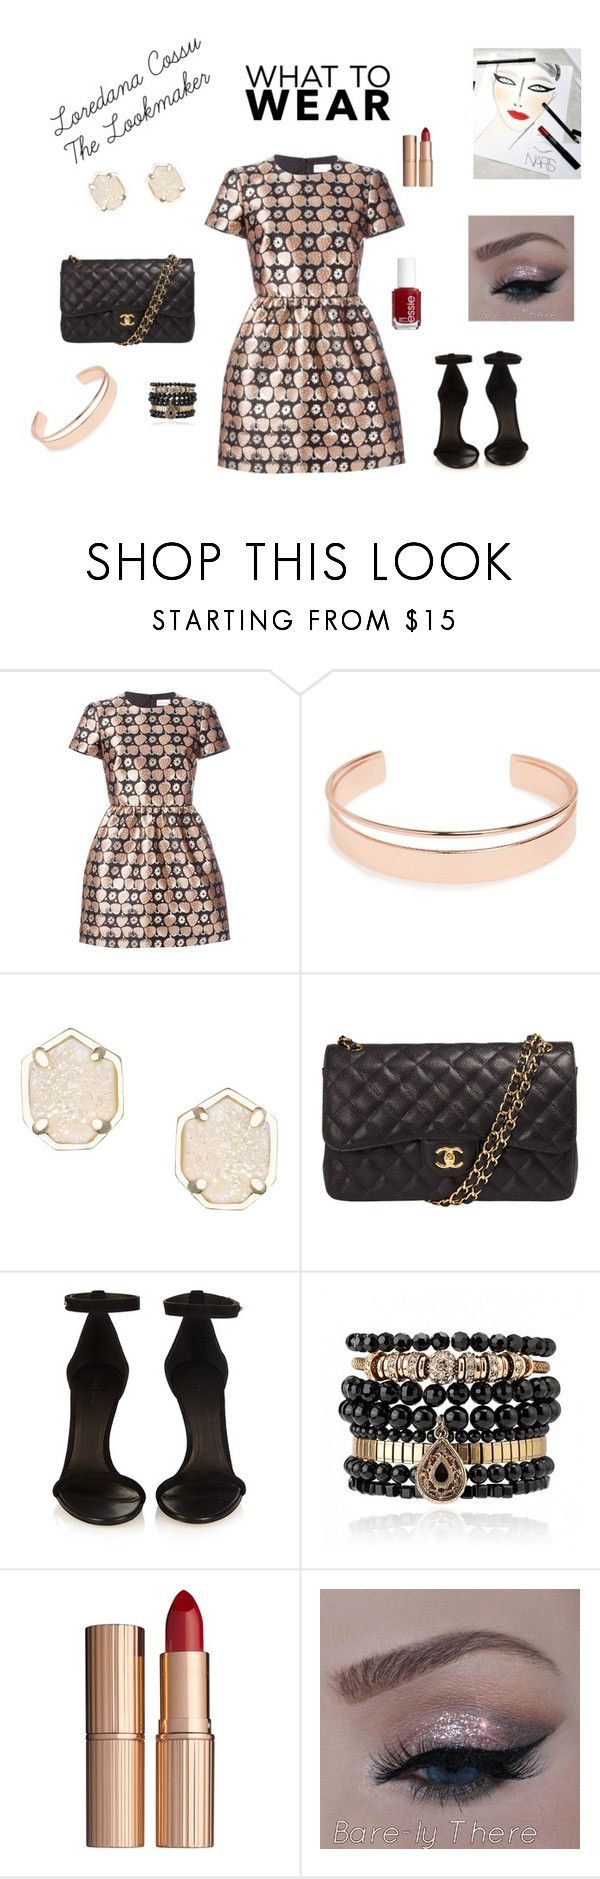 """total look cocktail"" by loredanacossu on Polyvore featuring RED Valentino, Leith, Kendra Scott, Chanel, Isabel Marant, Creatures Of The Wind, Samantha Wills, Charlotte Tilbury and Essie"